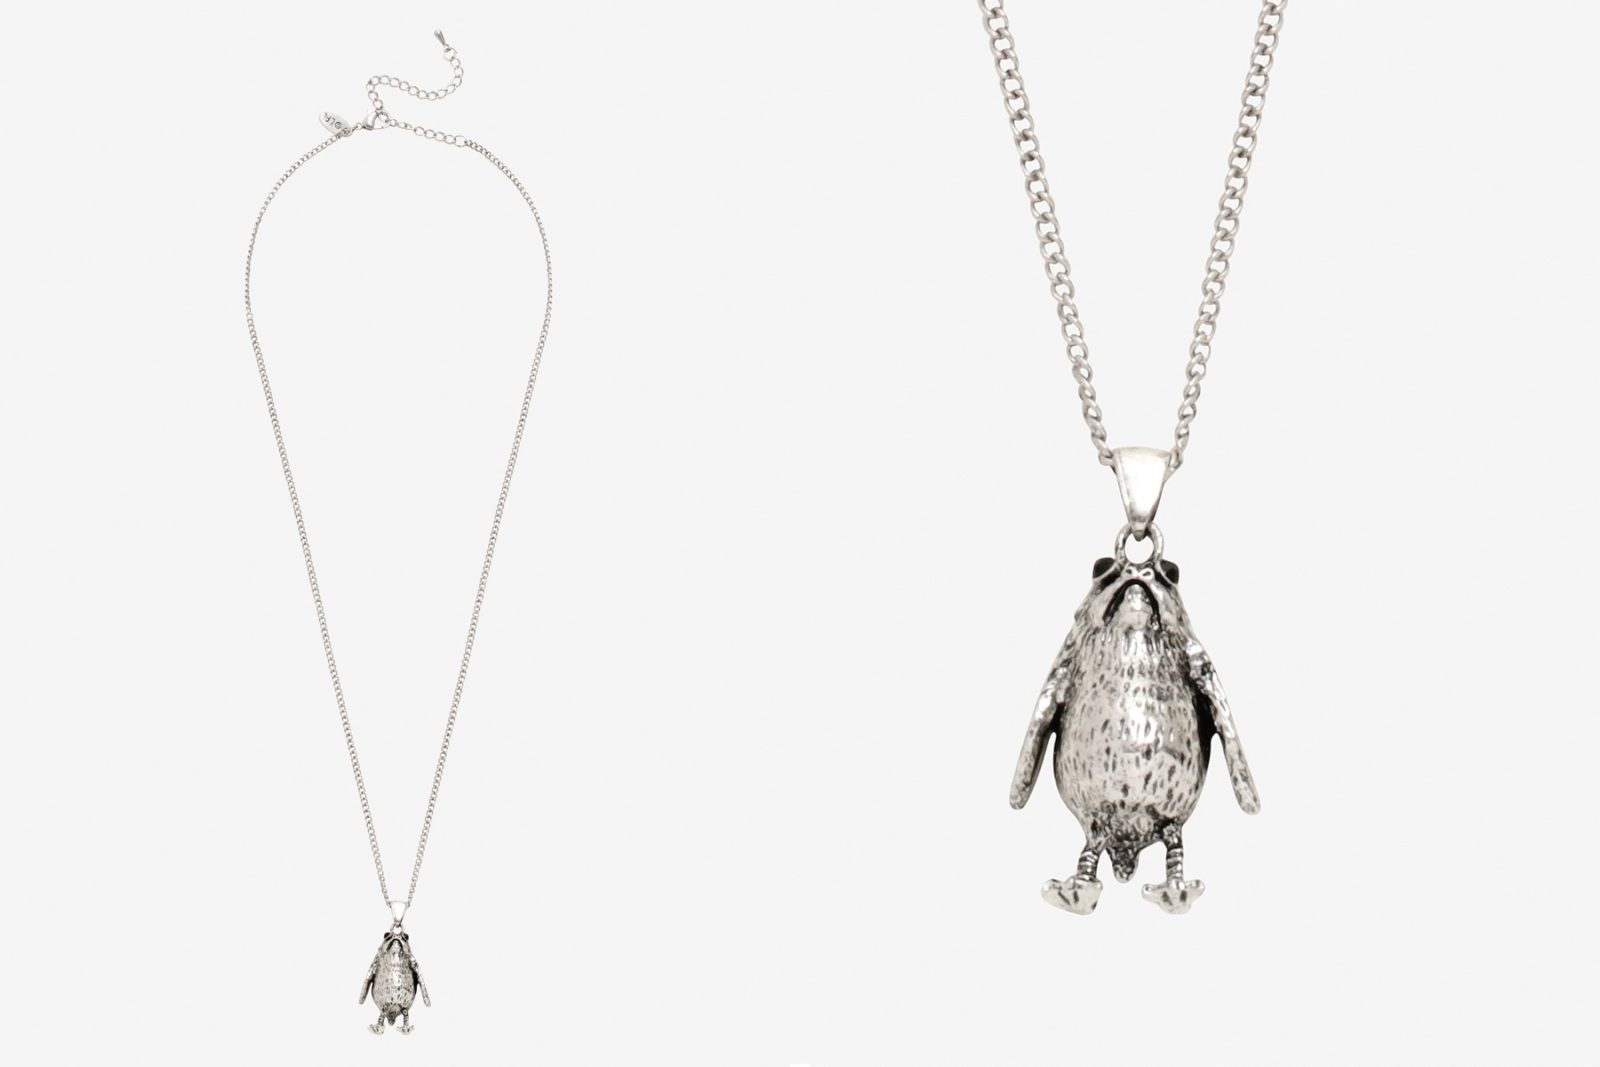 The Last Jedi Porg Necklace at Hot Topic